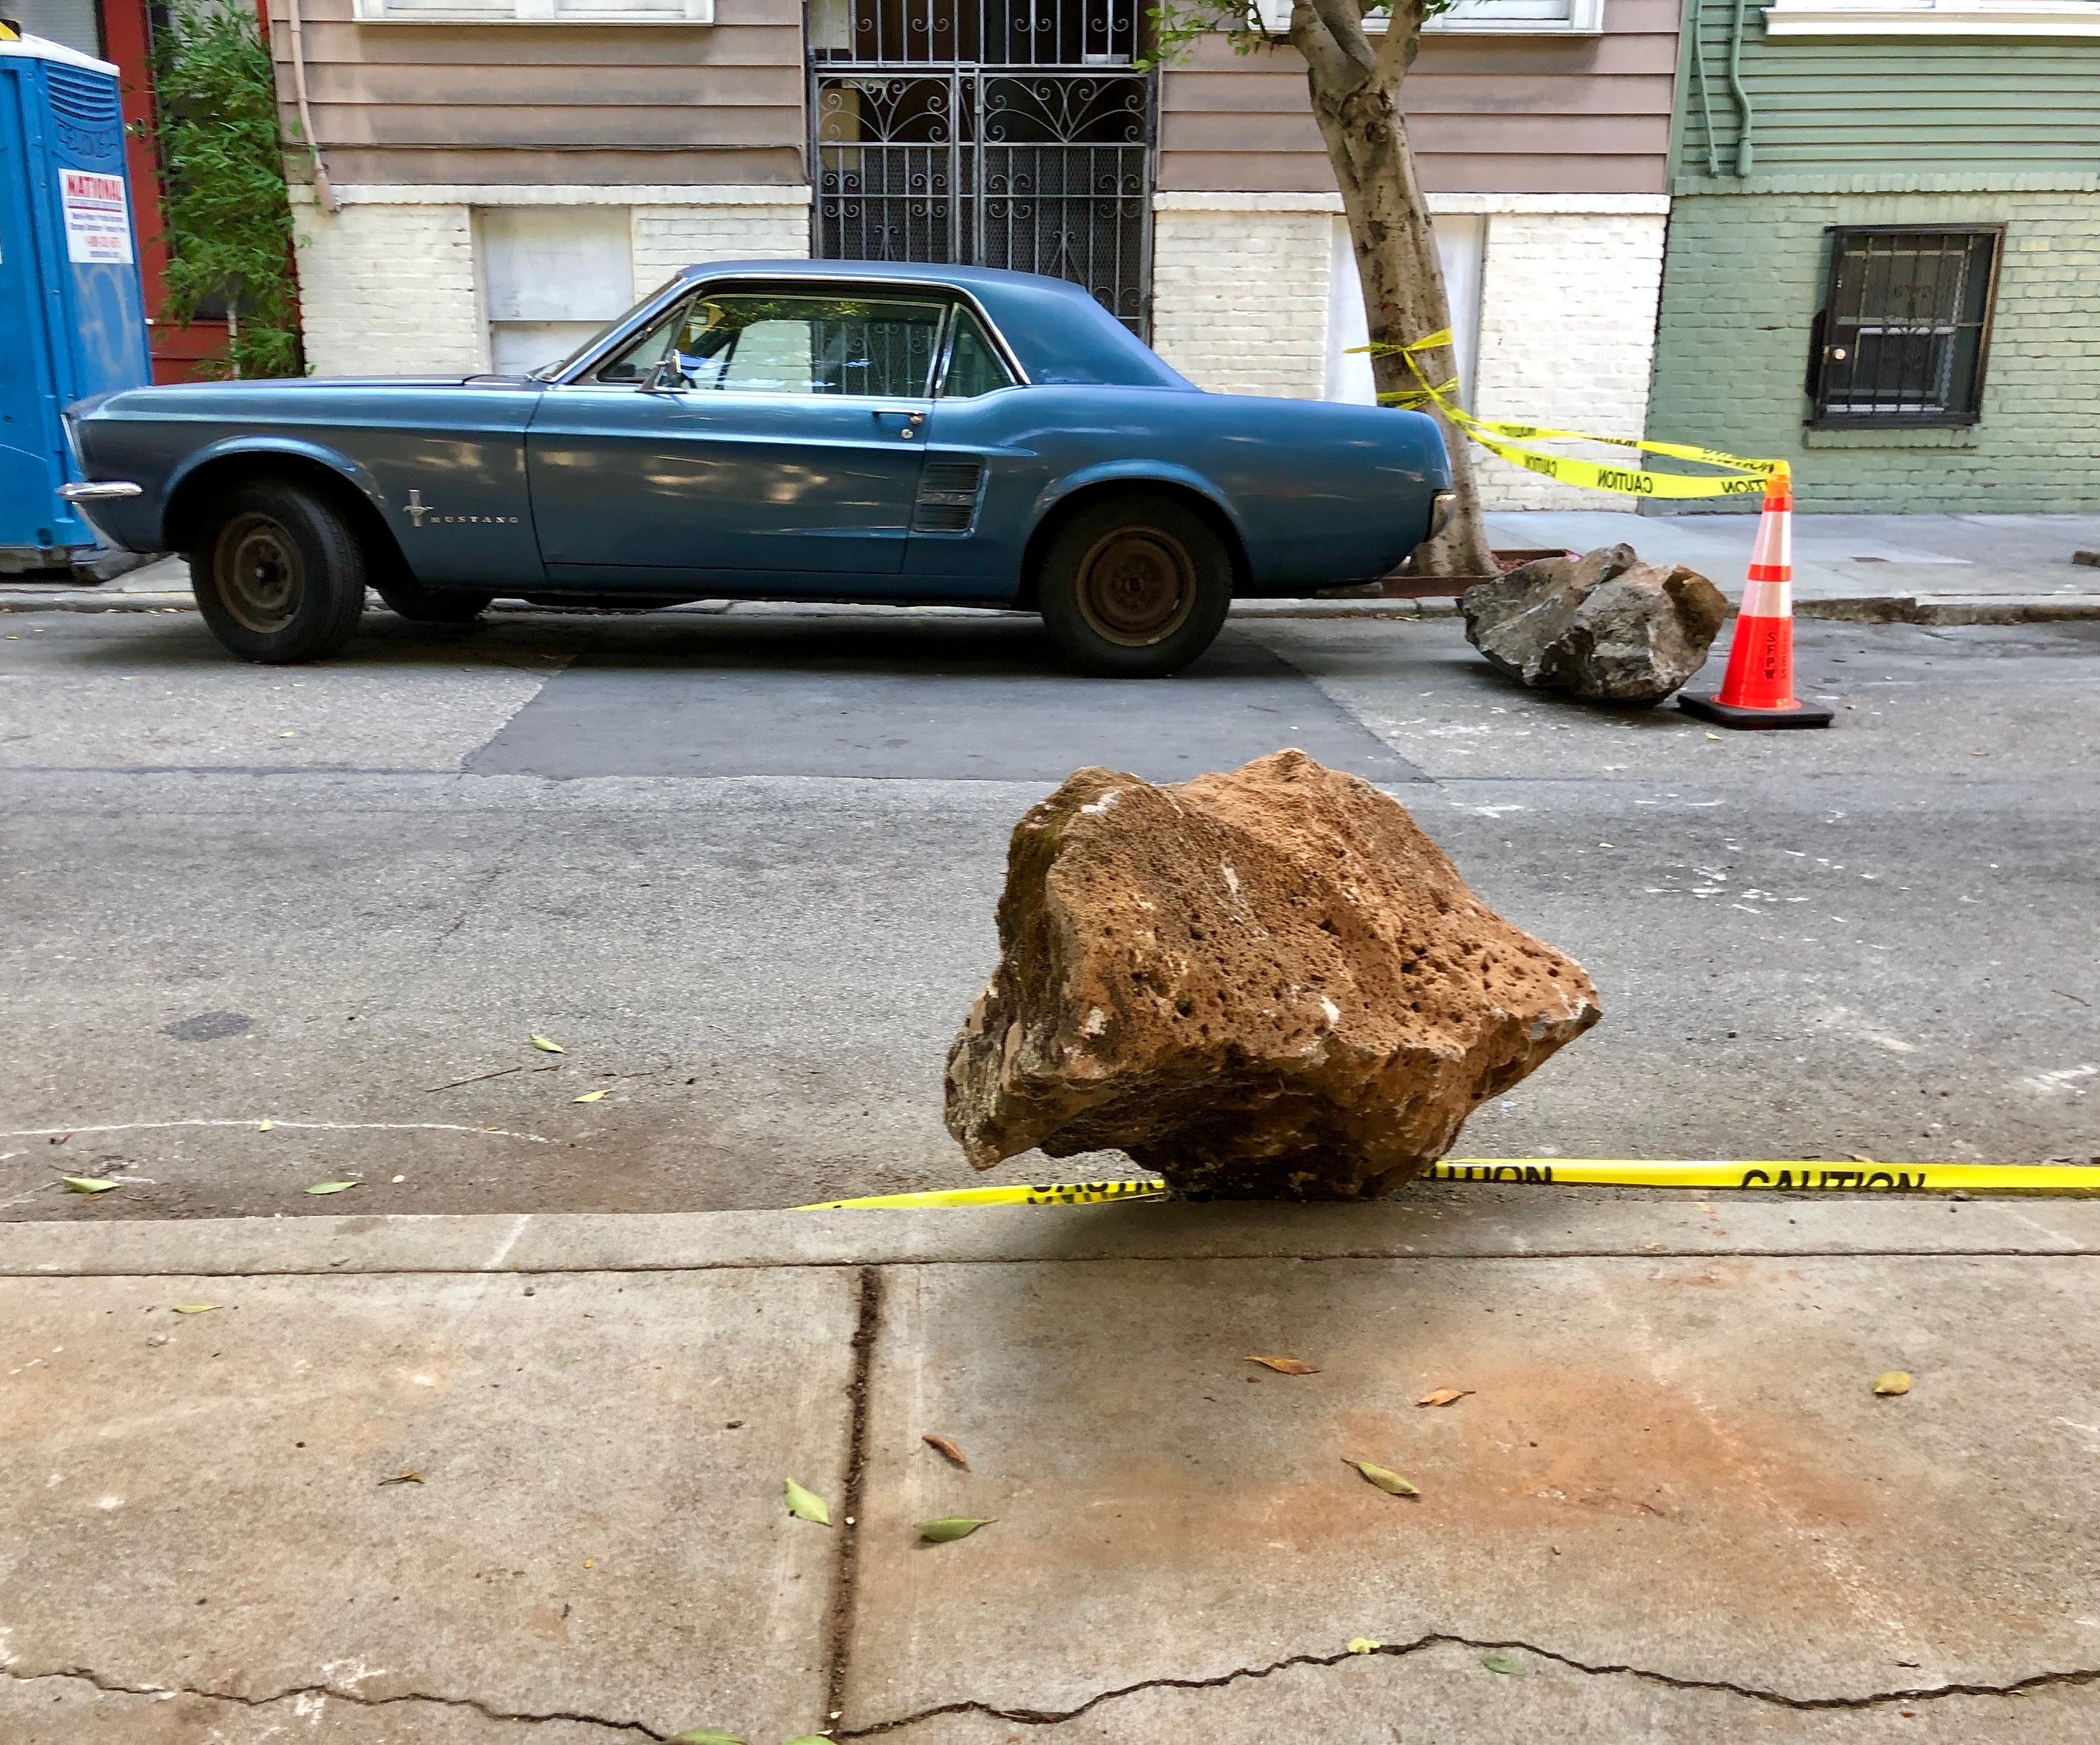 A sidewalk with a bolder on it. On the other side of the street sits a blue Mustang car with a boulder next to its back bumper.